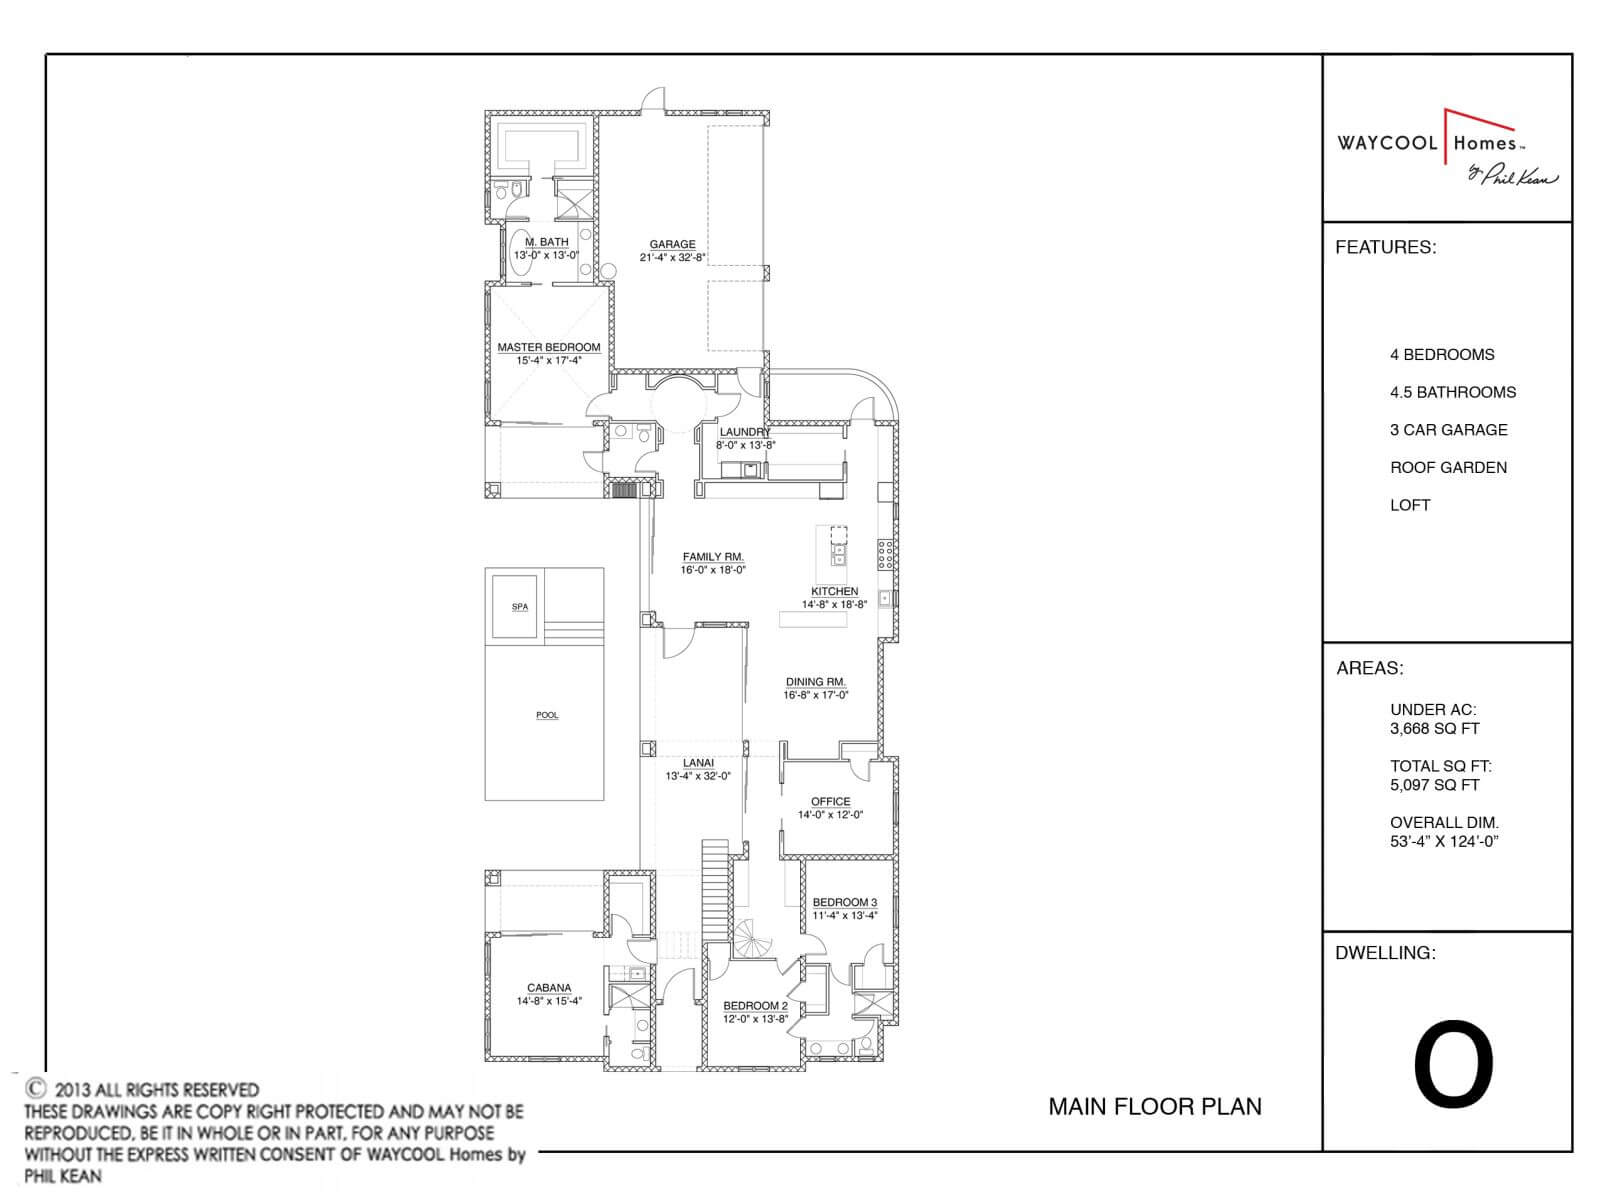 Floor Plans,WAYCOOL HOMES BY PHIL KEAN,1177